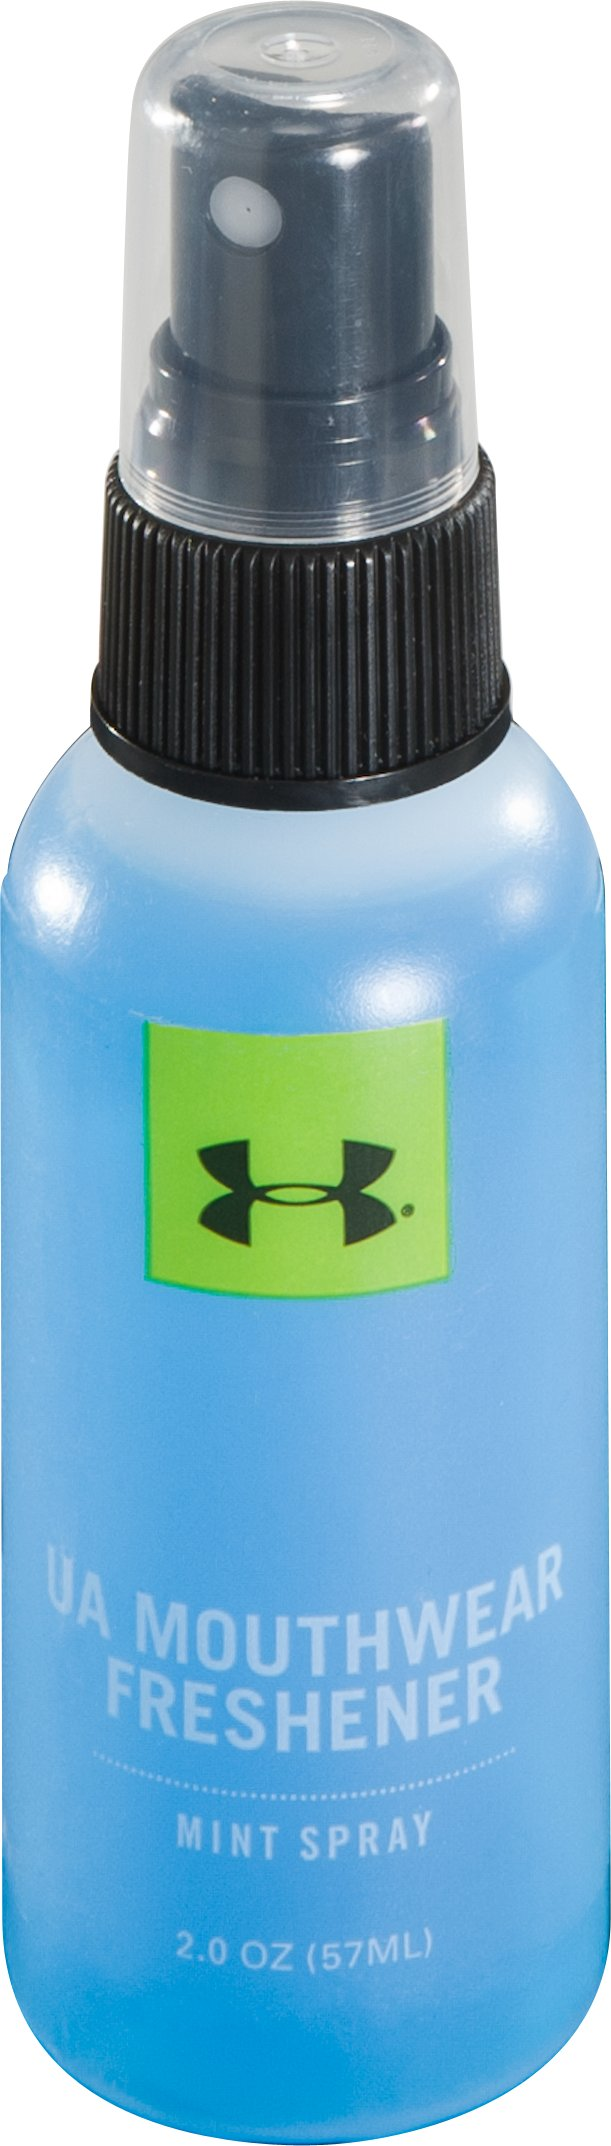 Under Armour® Anti-Microbial Mouthwear Freshener, Marine, undefined